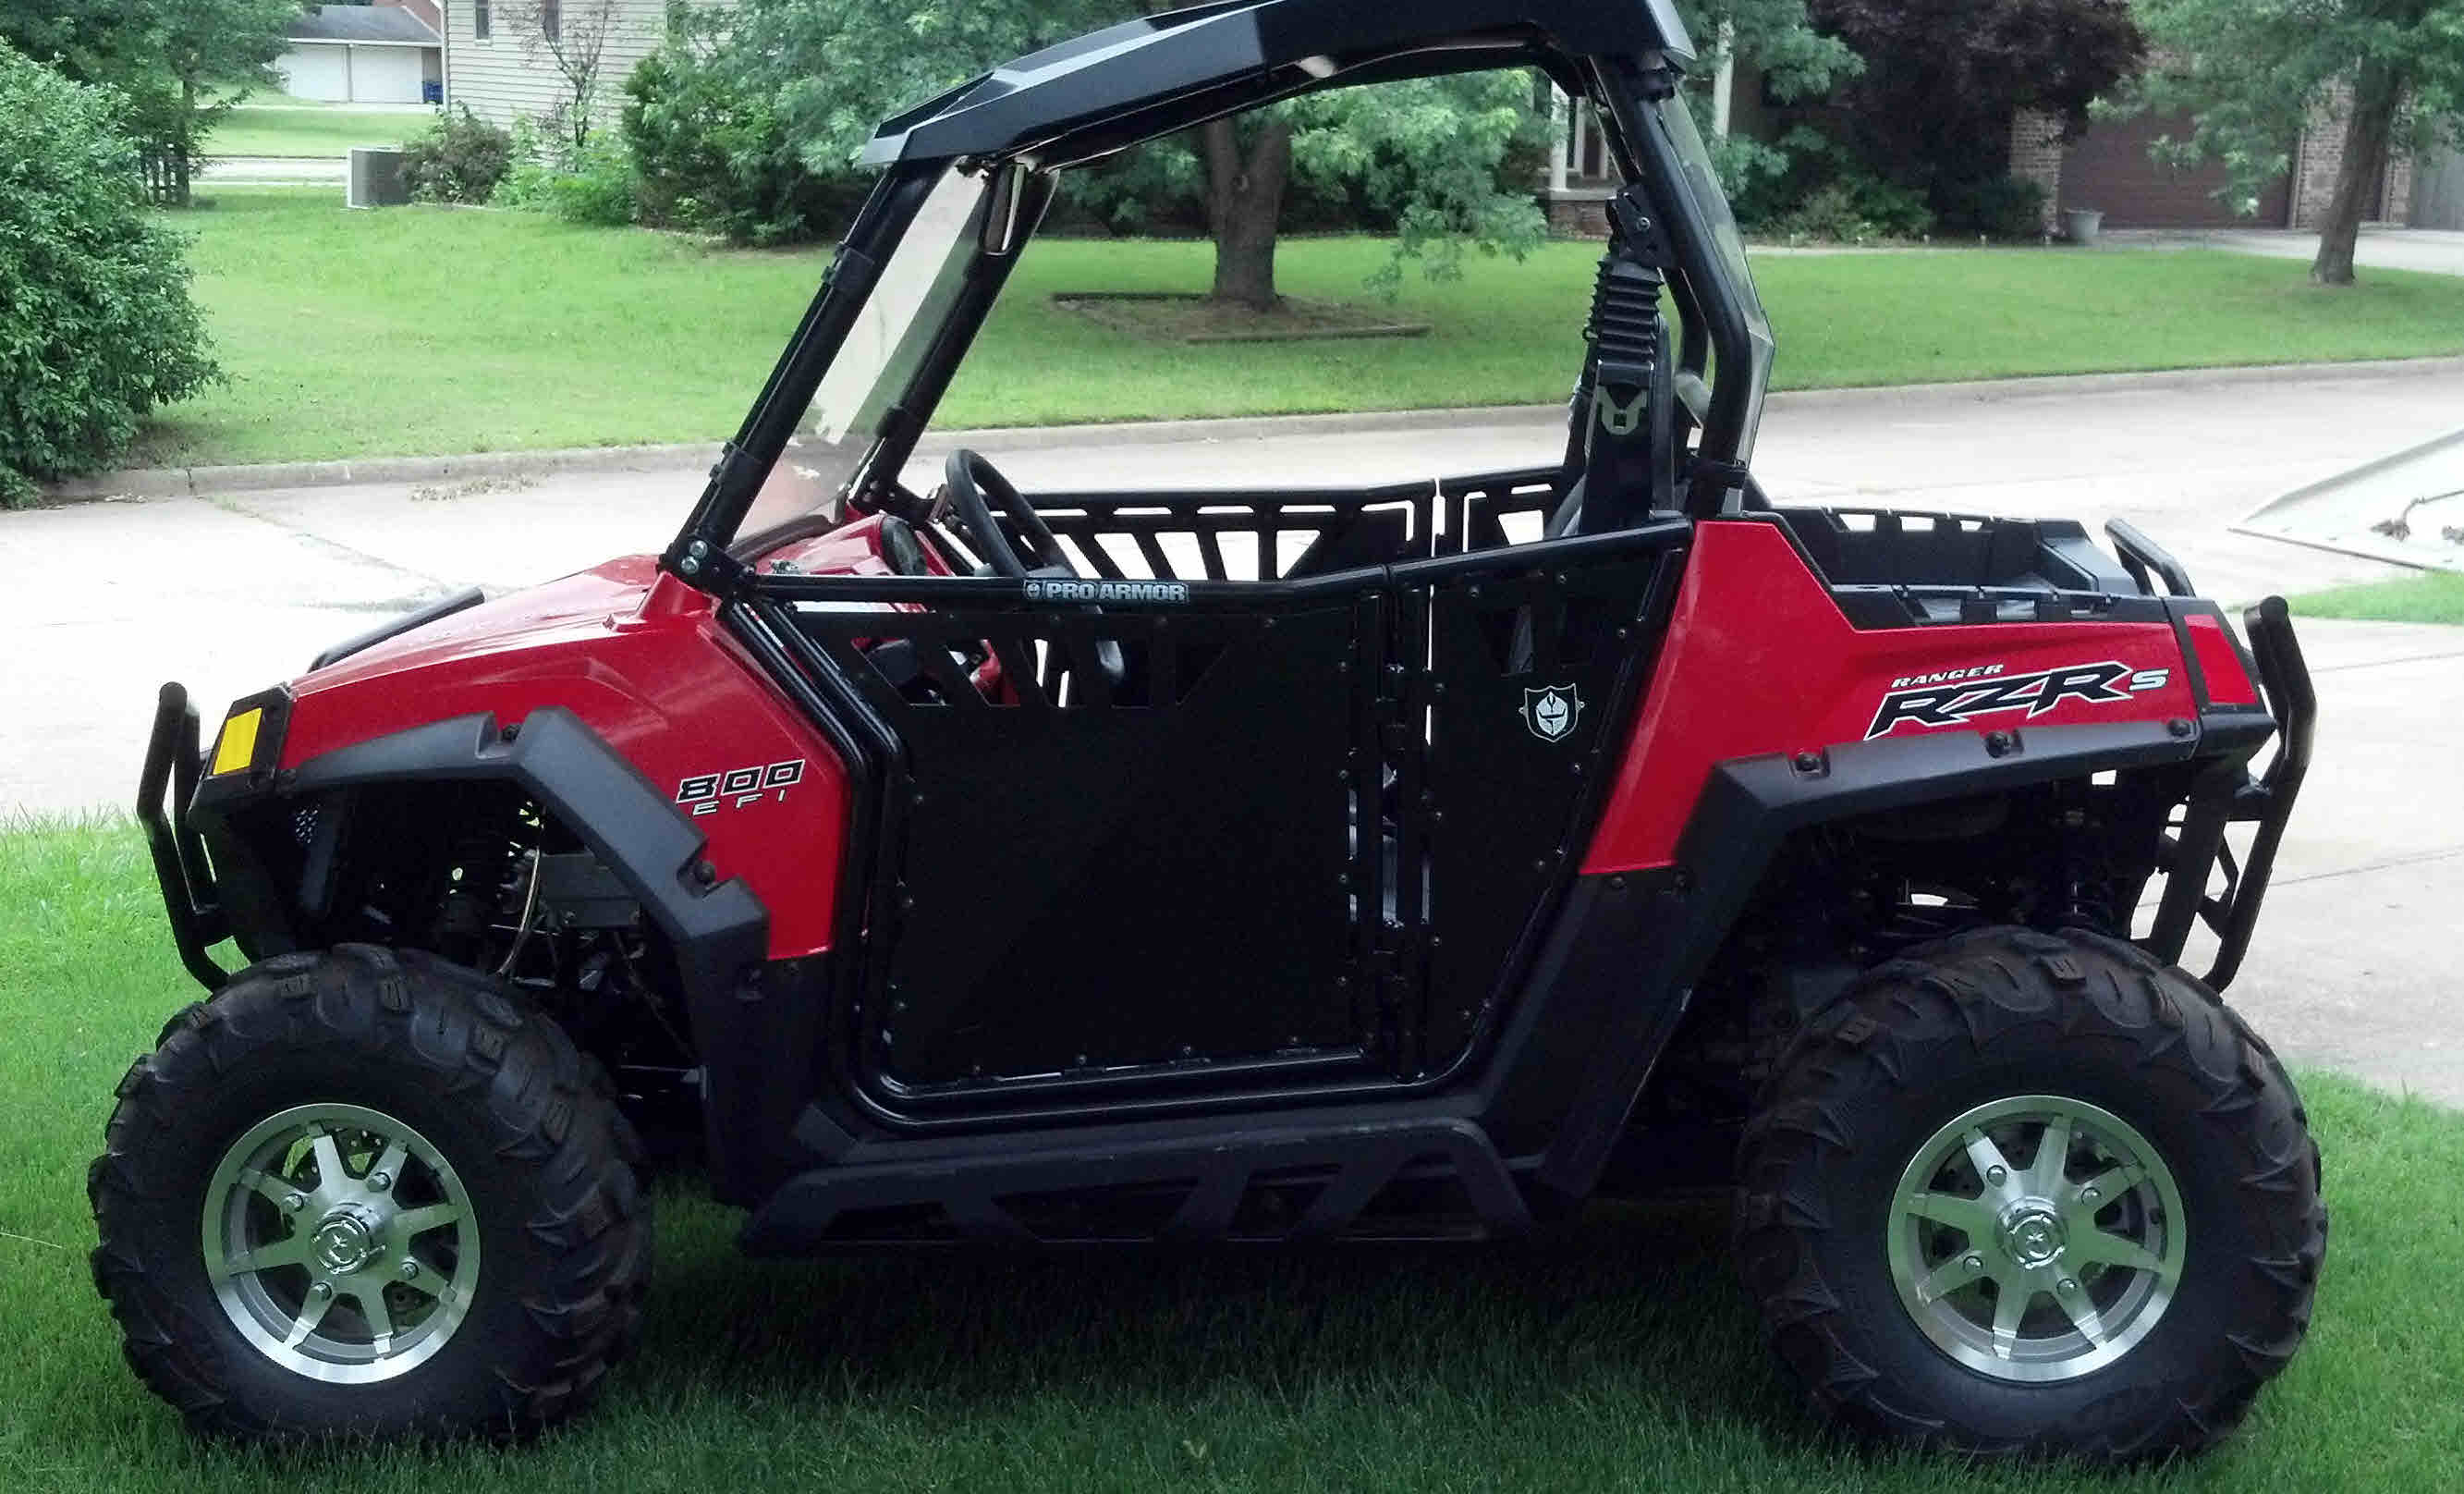 2012 Polaris Rzr S 800 With 2500 In Extras Only 330